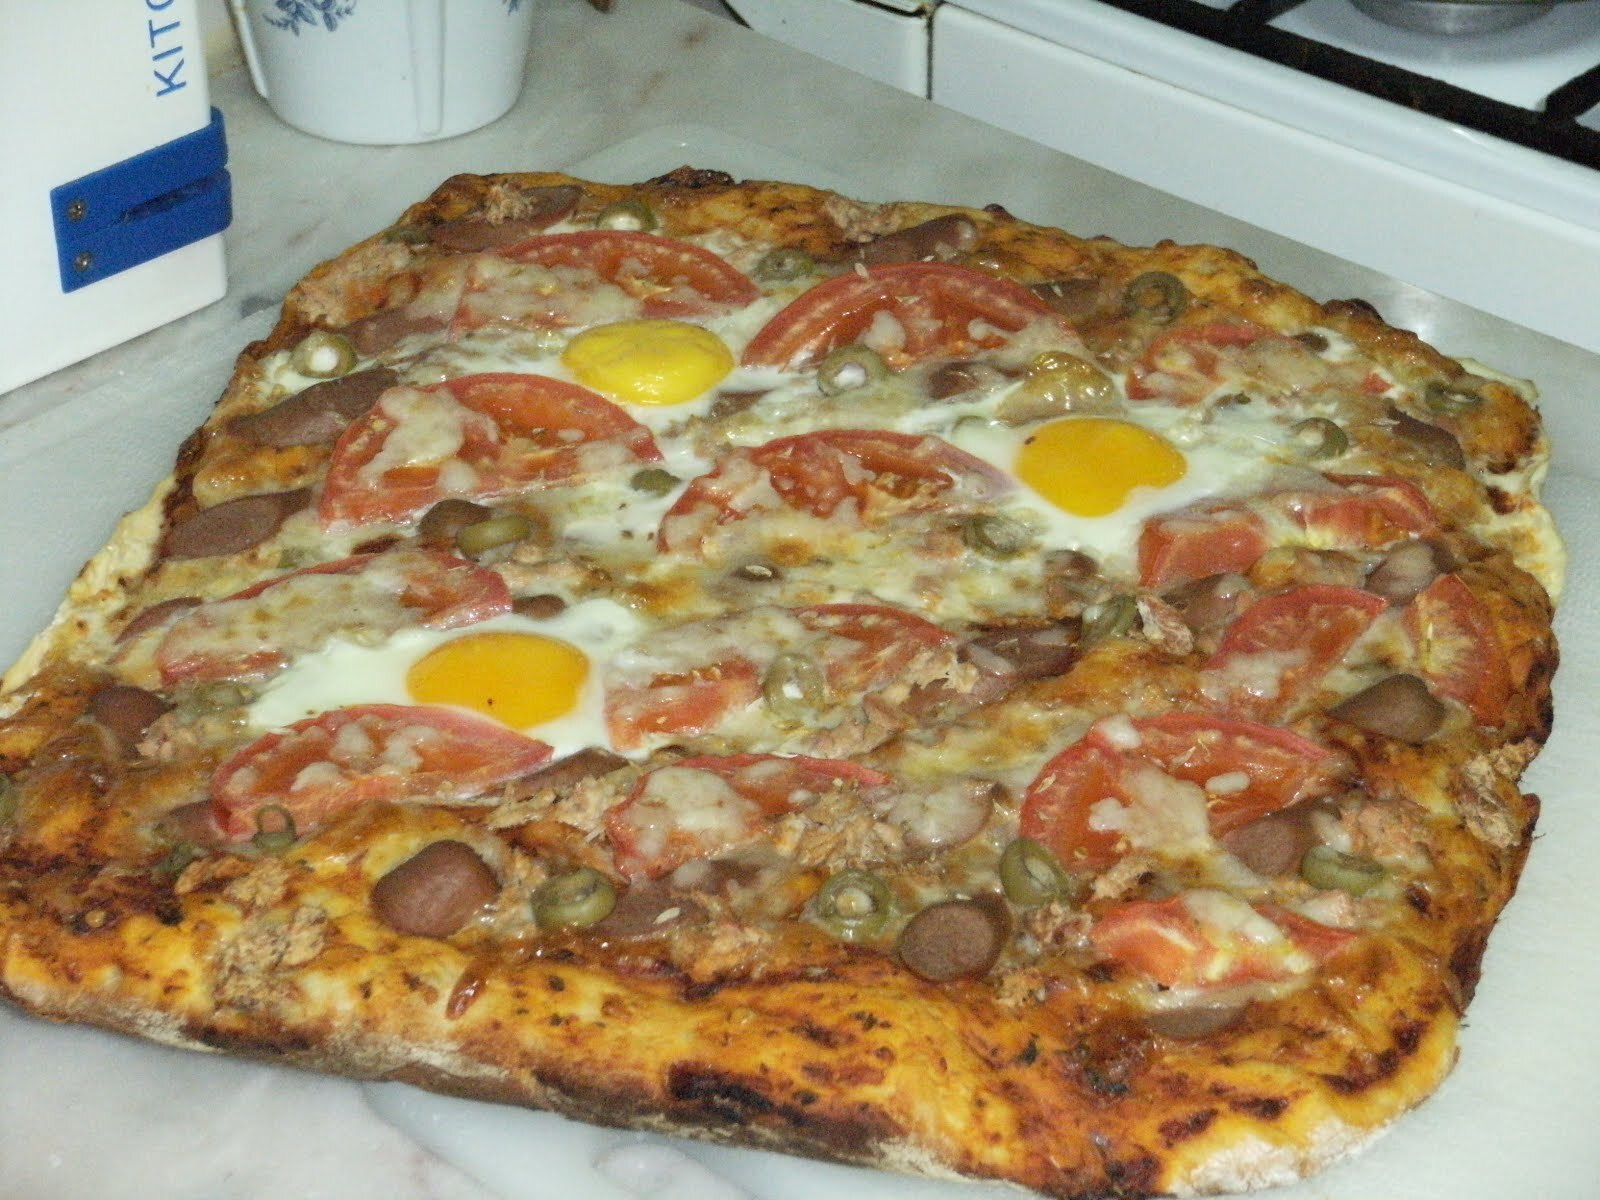 Pizza familiar